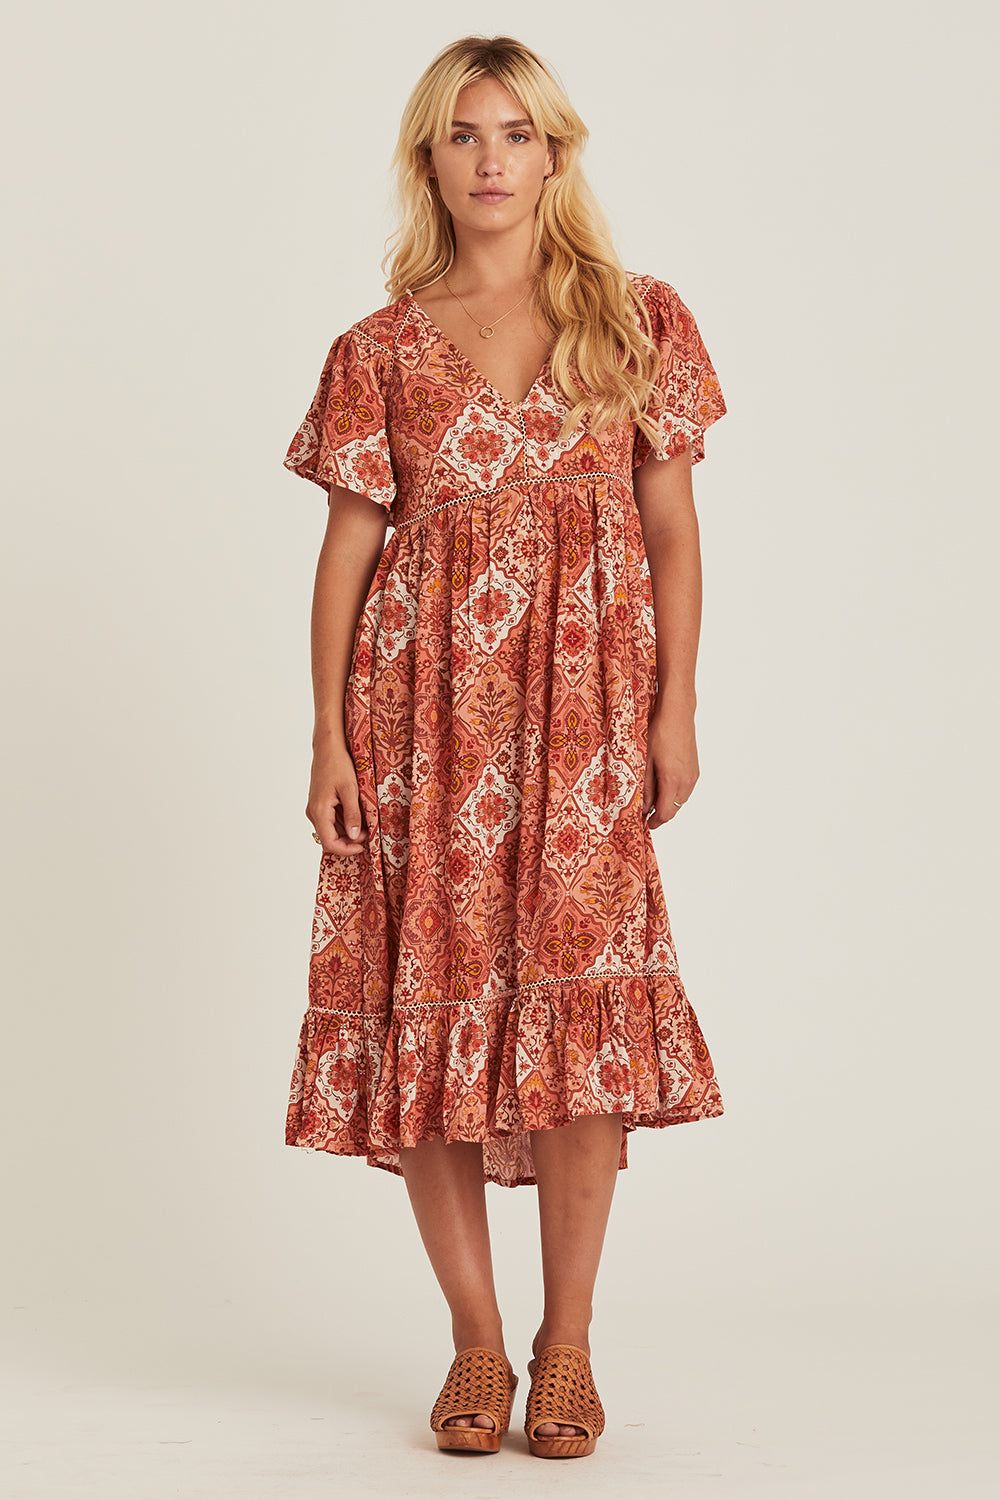 Zephyr Sundress in Rhubarb